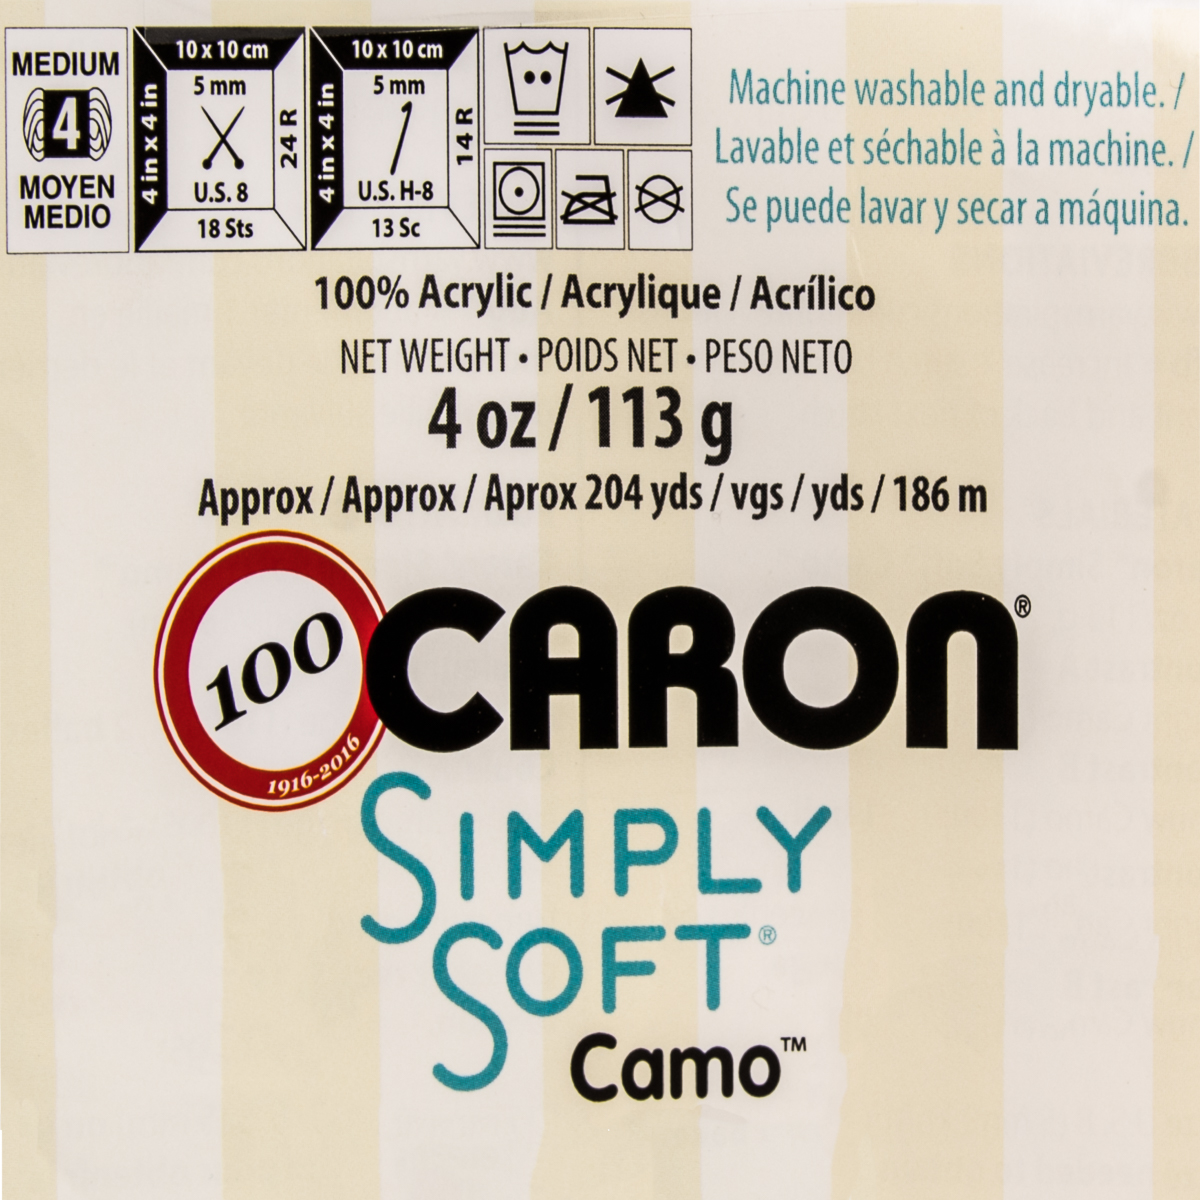 3pk-Caron-Simply-Soft-Camo-100-Acrylic-Yarn-Medium-4-Knit-Crochet-Skeins-Soft thumbnail 26